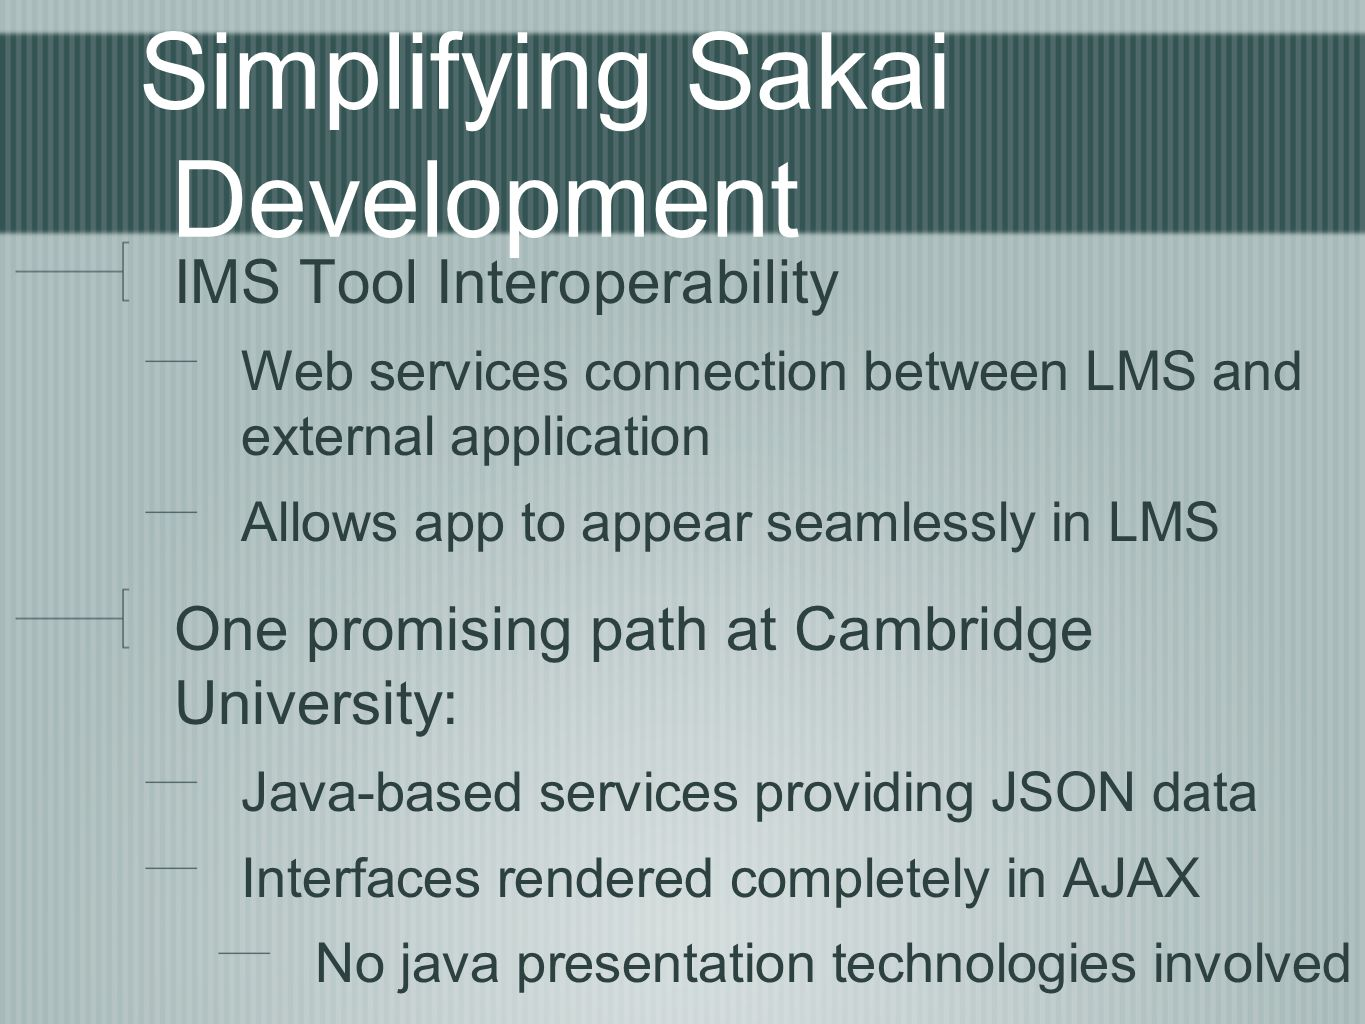 Simplifying Sakai Development IMS Tool Interoperability Web services connection between LMS and external application Allows app to appear seamlessly in LMS One promising path at Cambridge University: Java-based services providing JSON data Interfaces rendered completely in AJAX No java presentation technologies involved